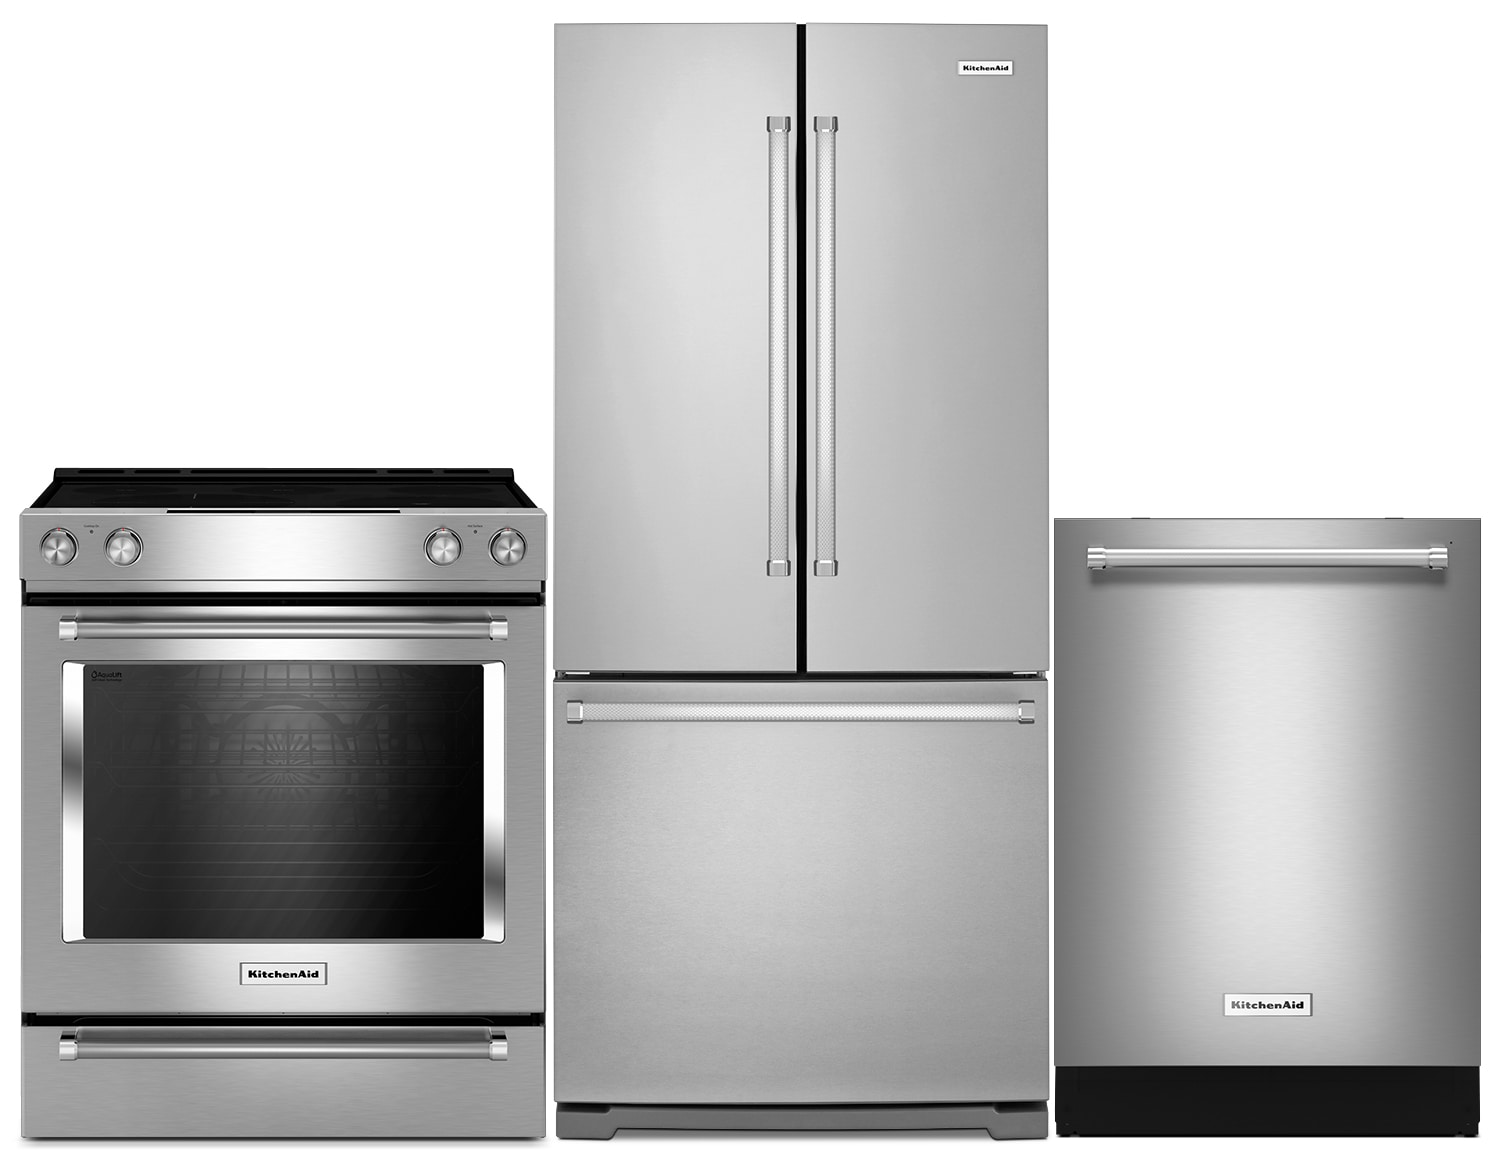 Cooking Products - KitchenAid 19.7 Cu. Ft. Refrigerator, 6.4 Cu. Ft. Range and Built-In Dishwasher – Stainless Steel